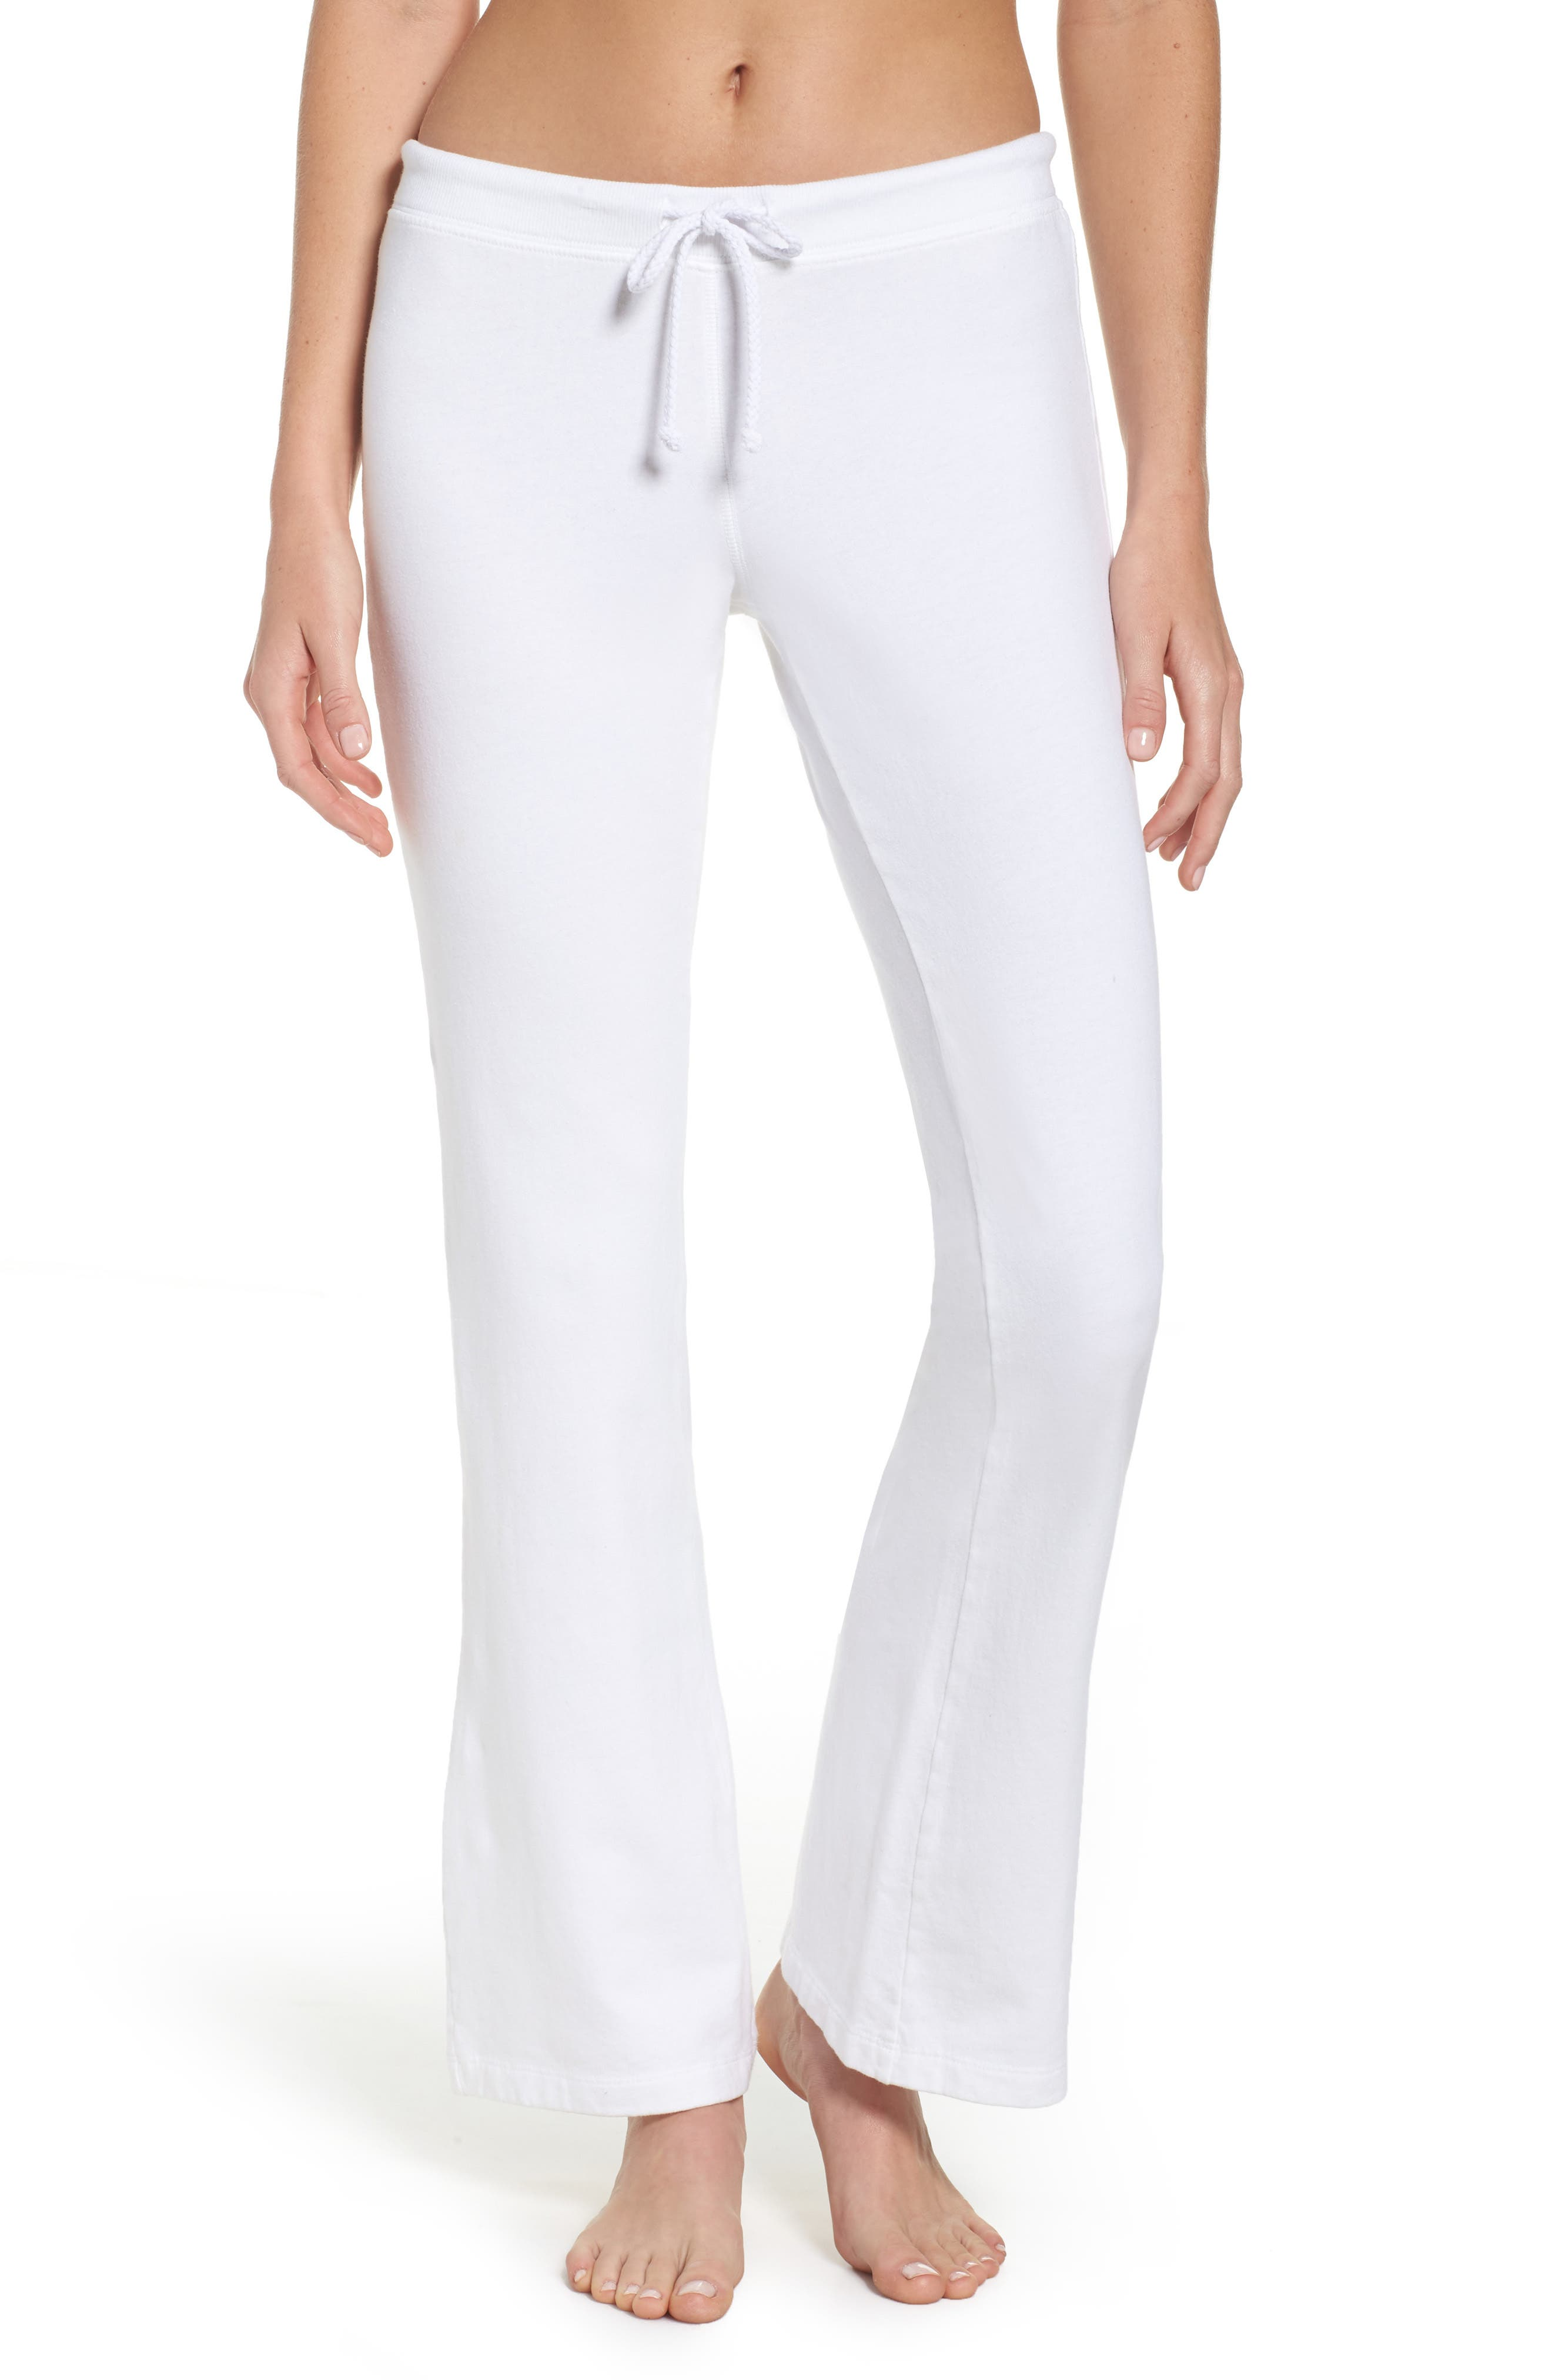 Fuzzy Flare Lounge Pants,                         Main,                         color, 100